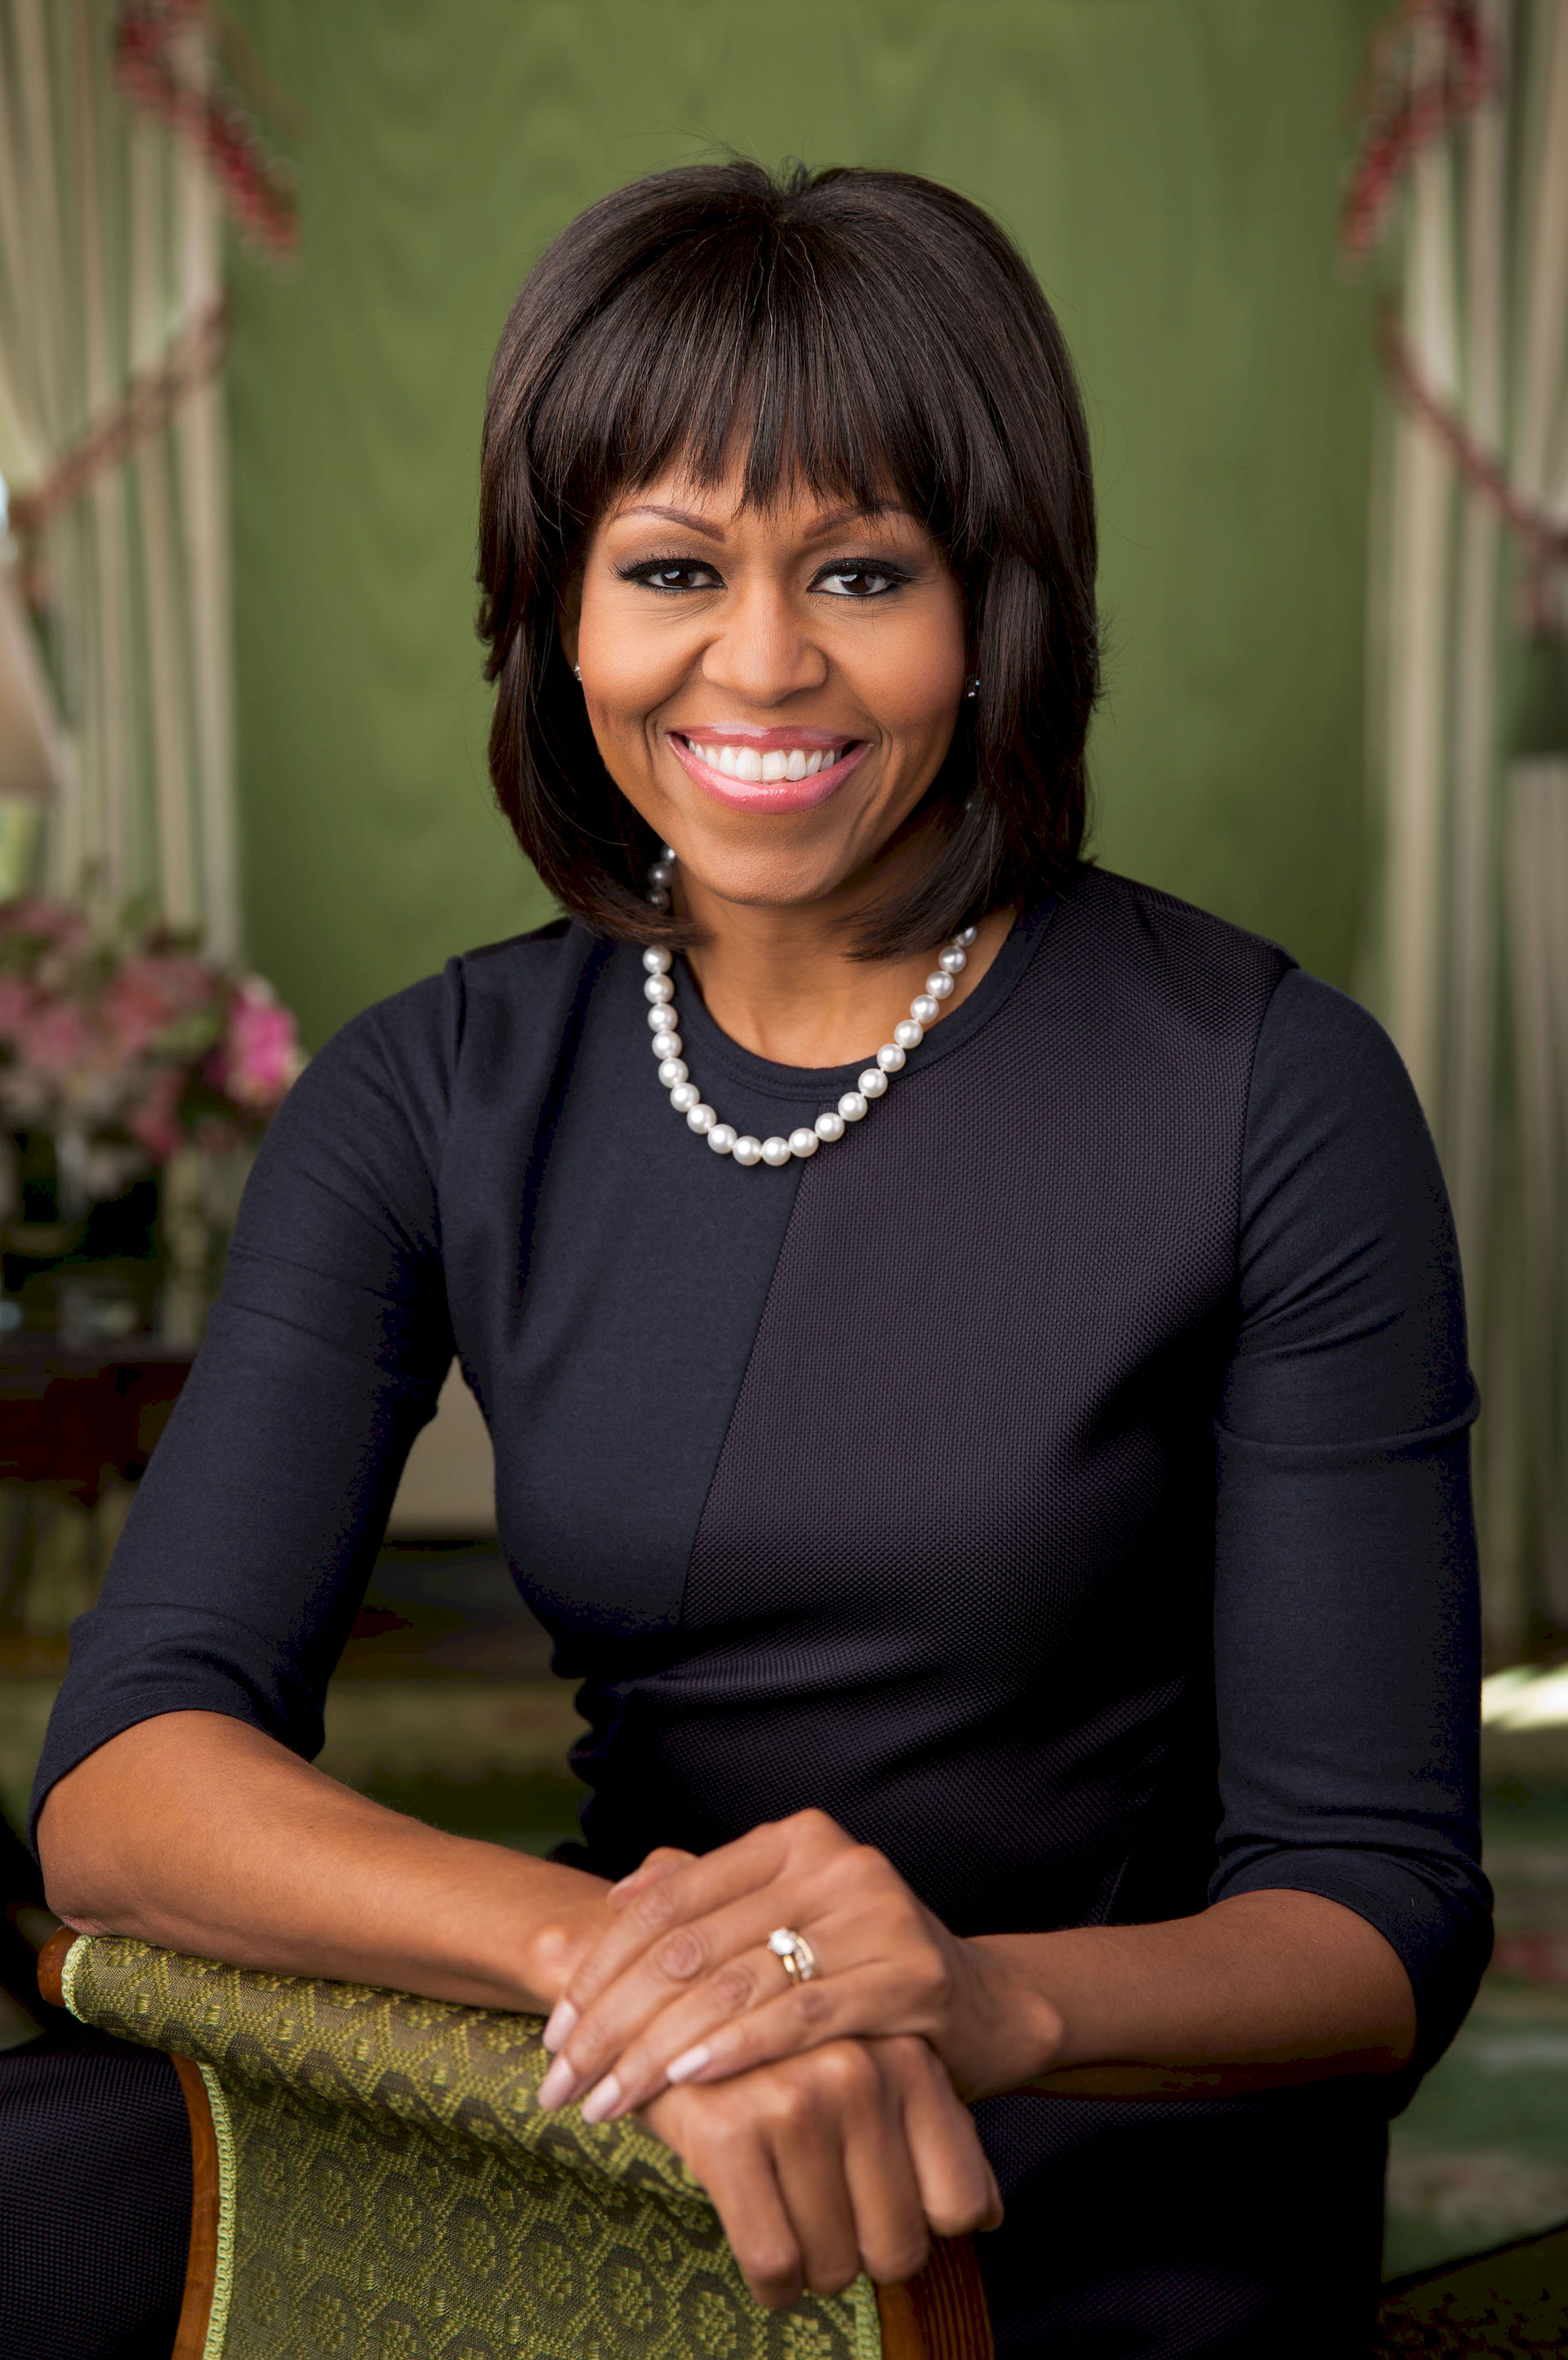 Photo of Michelle Obama: Lawyer, writer, wife of Barack Obama and First Lady of the United States